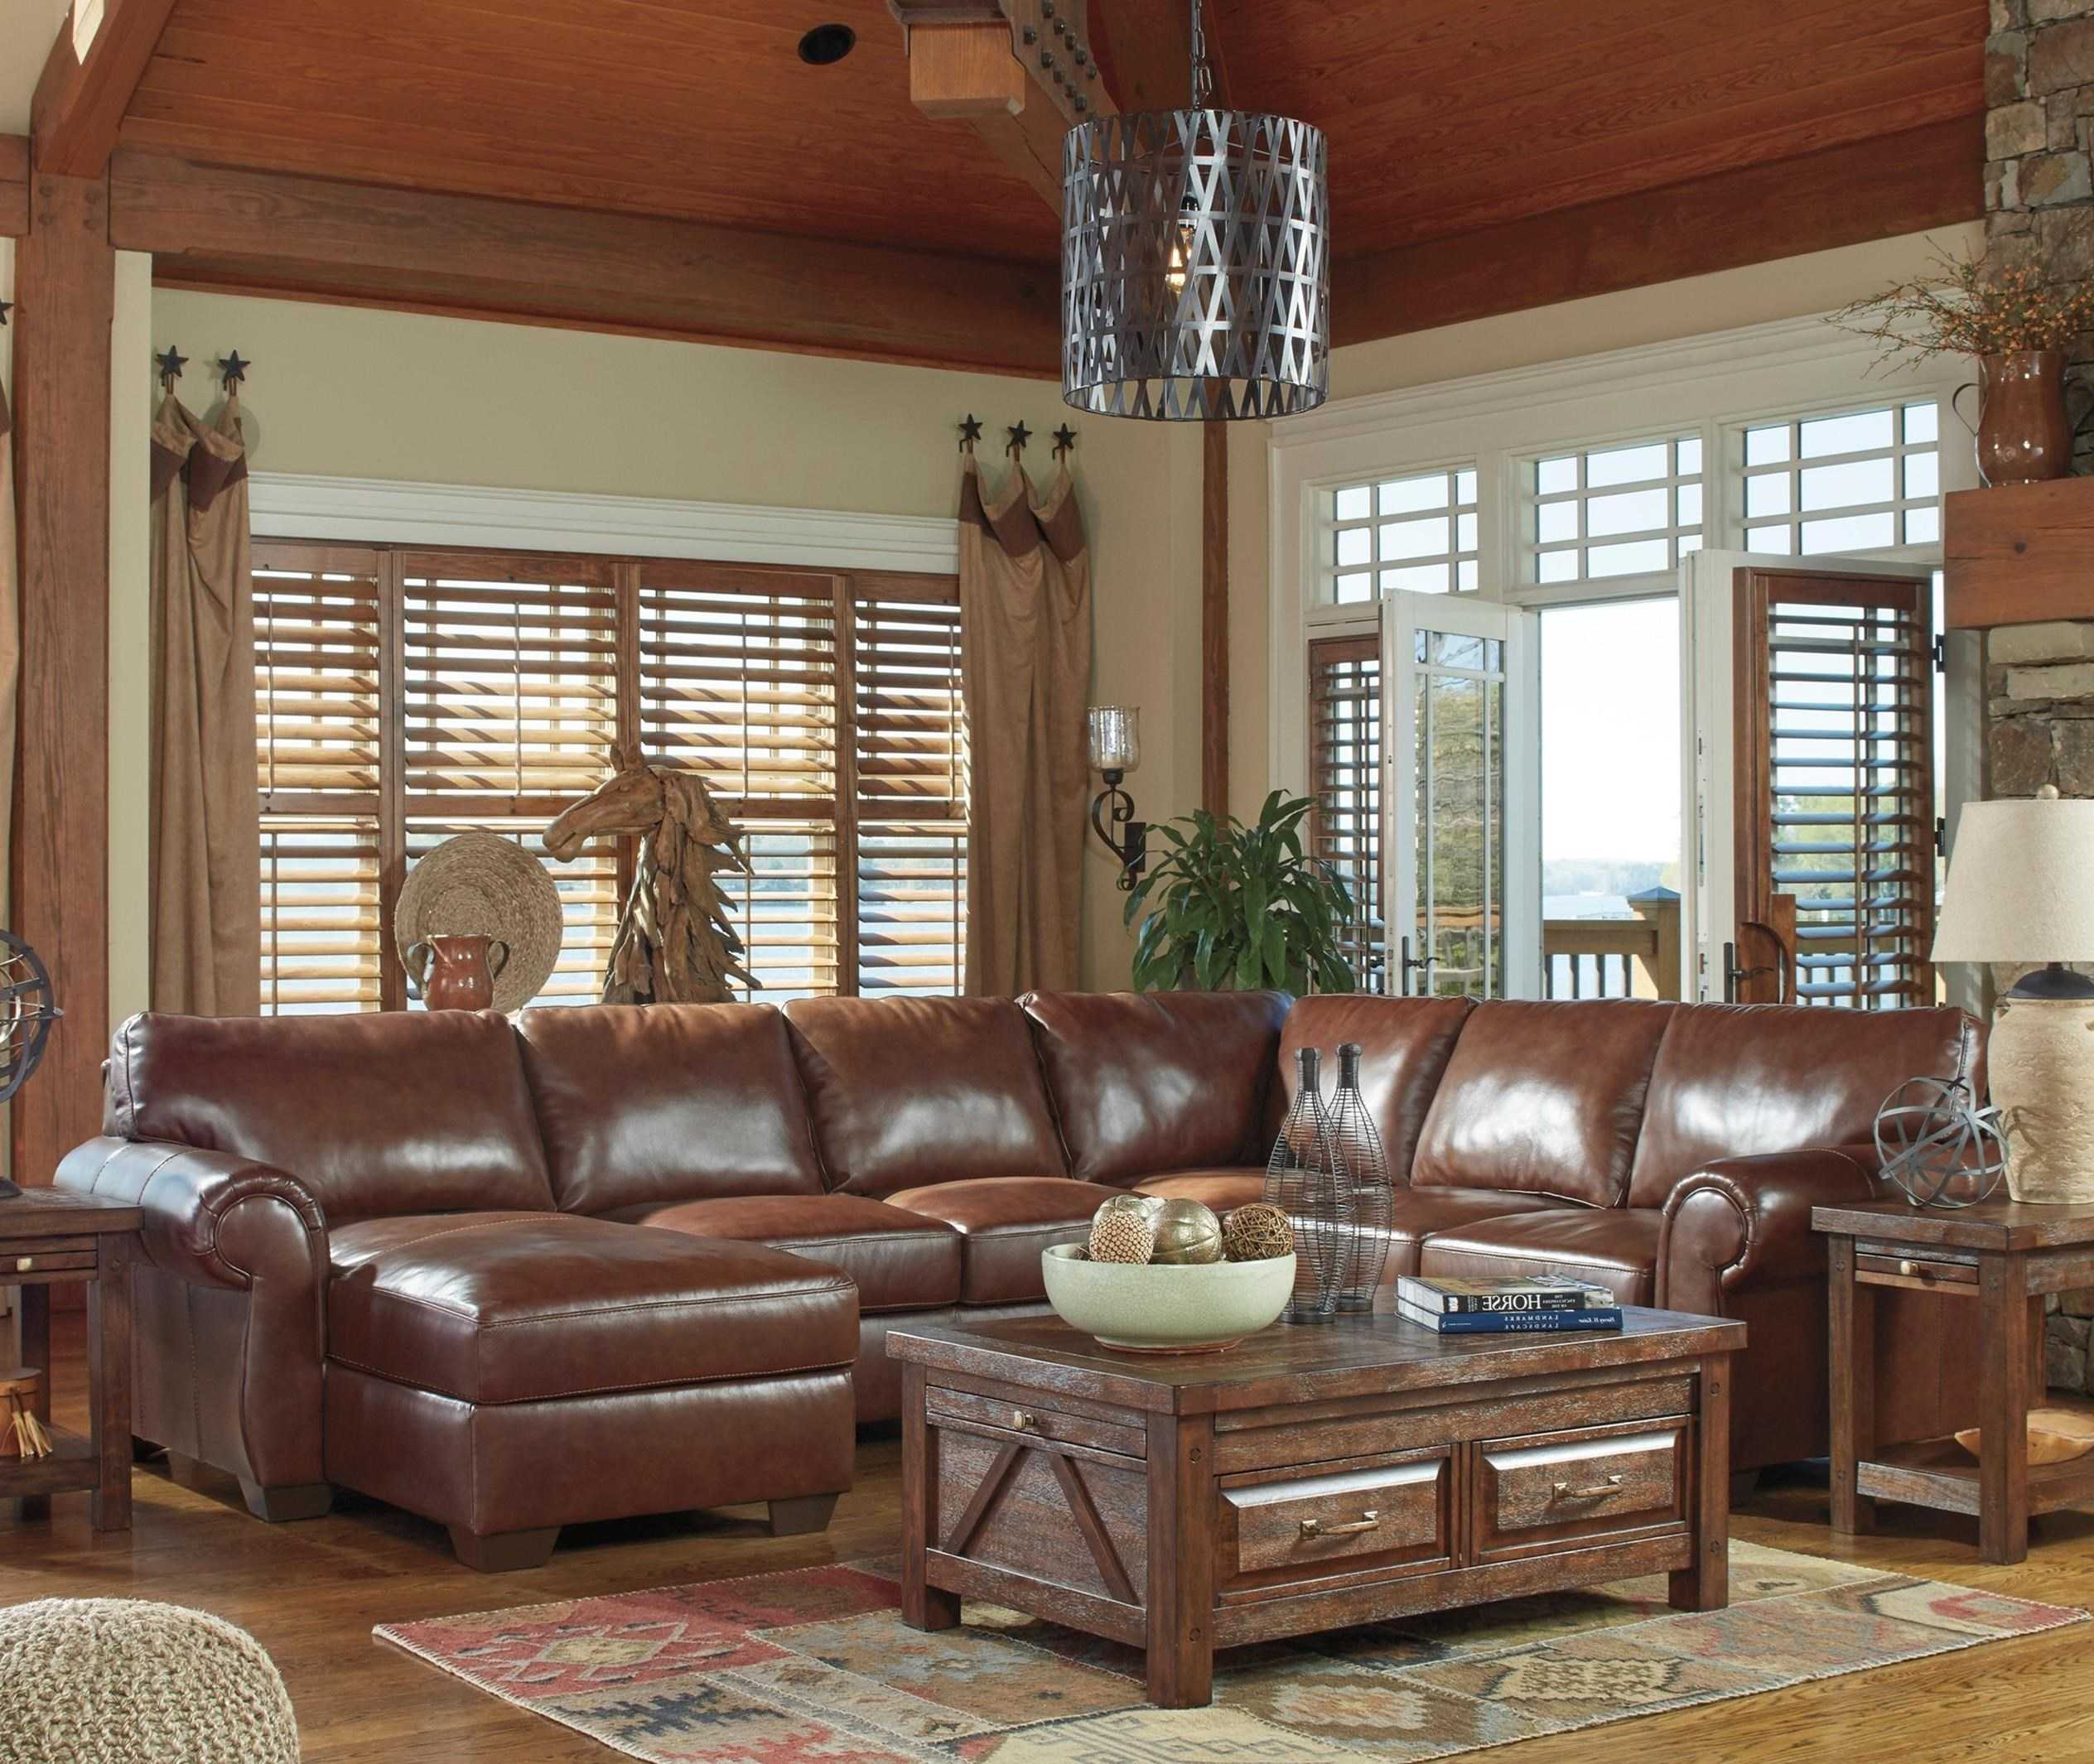 Signature Design By Ashley Lugoro Leather Match 4 Piece Sectional With Left  Chaise